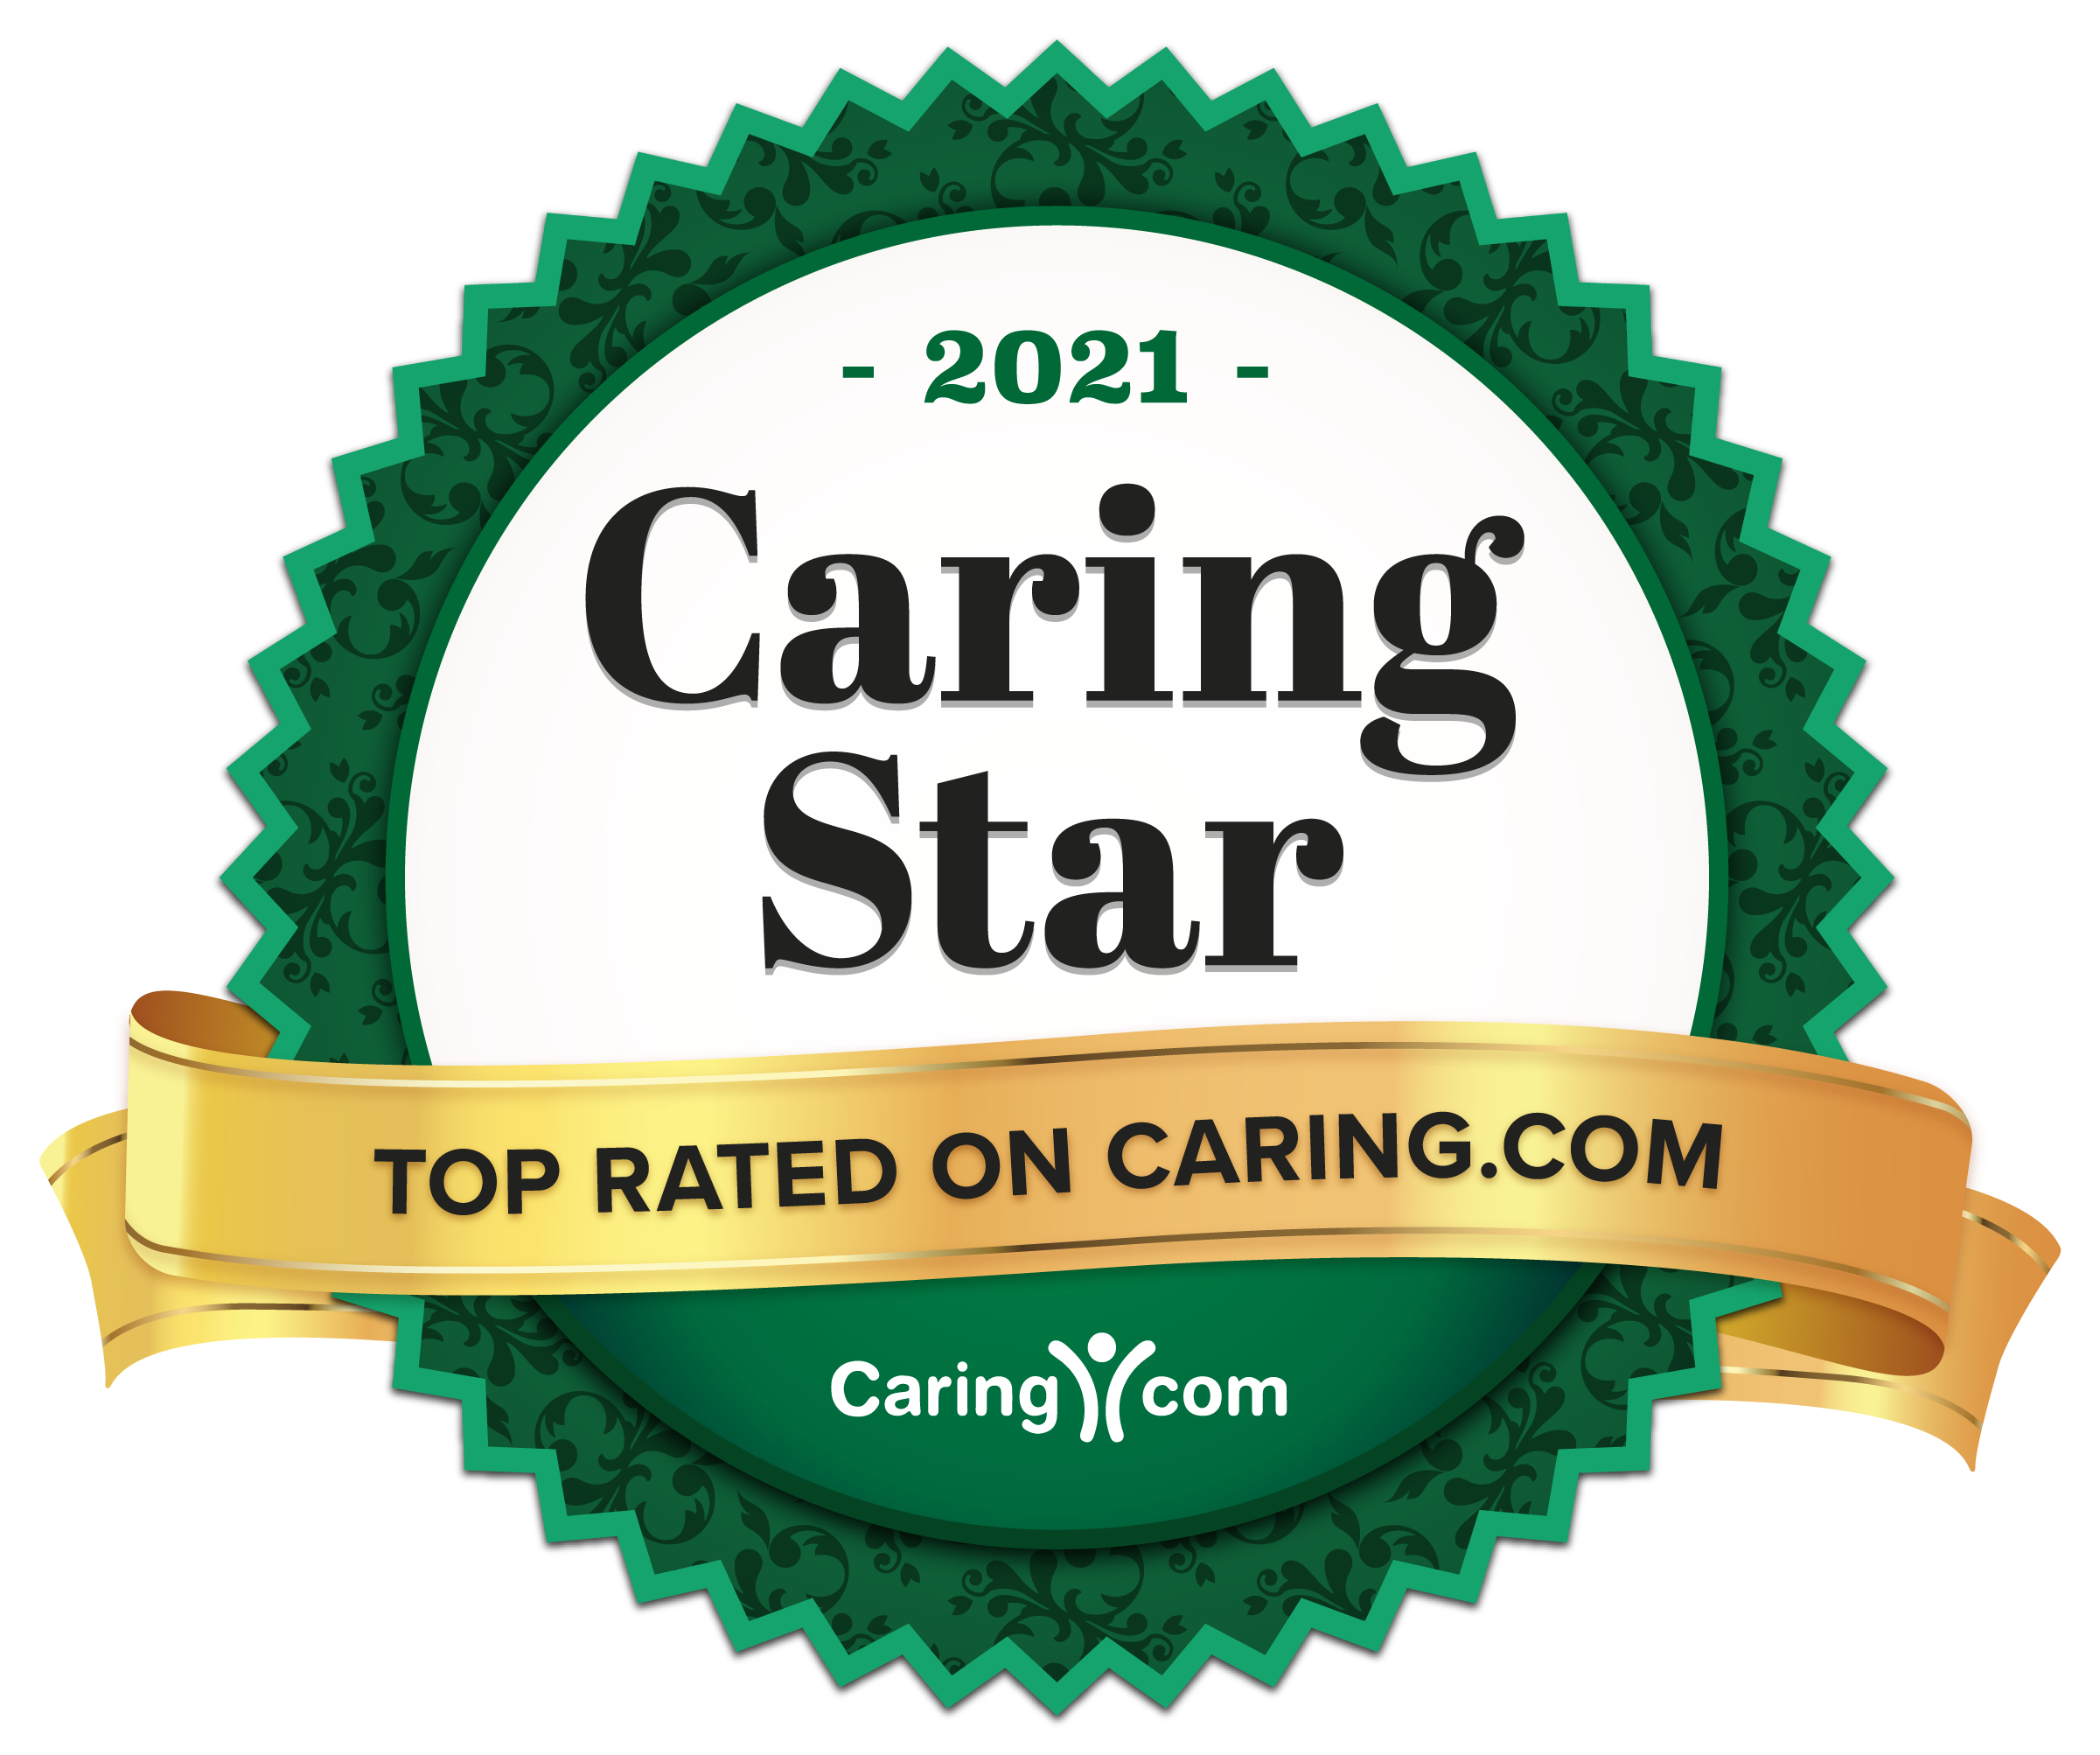 2021 Caring Star